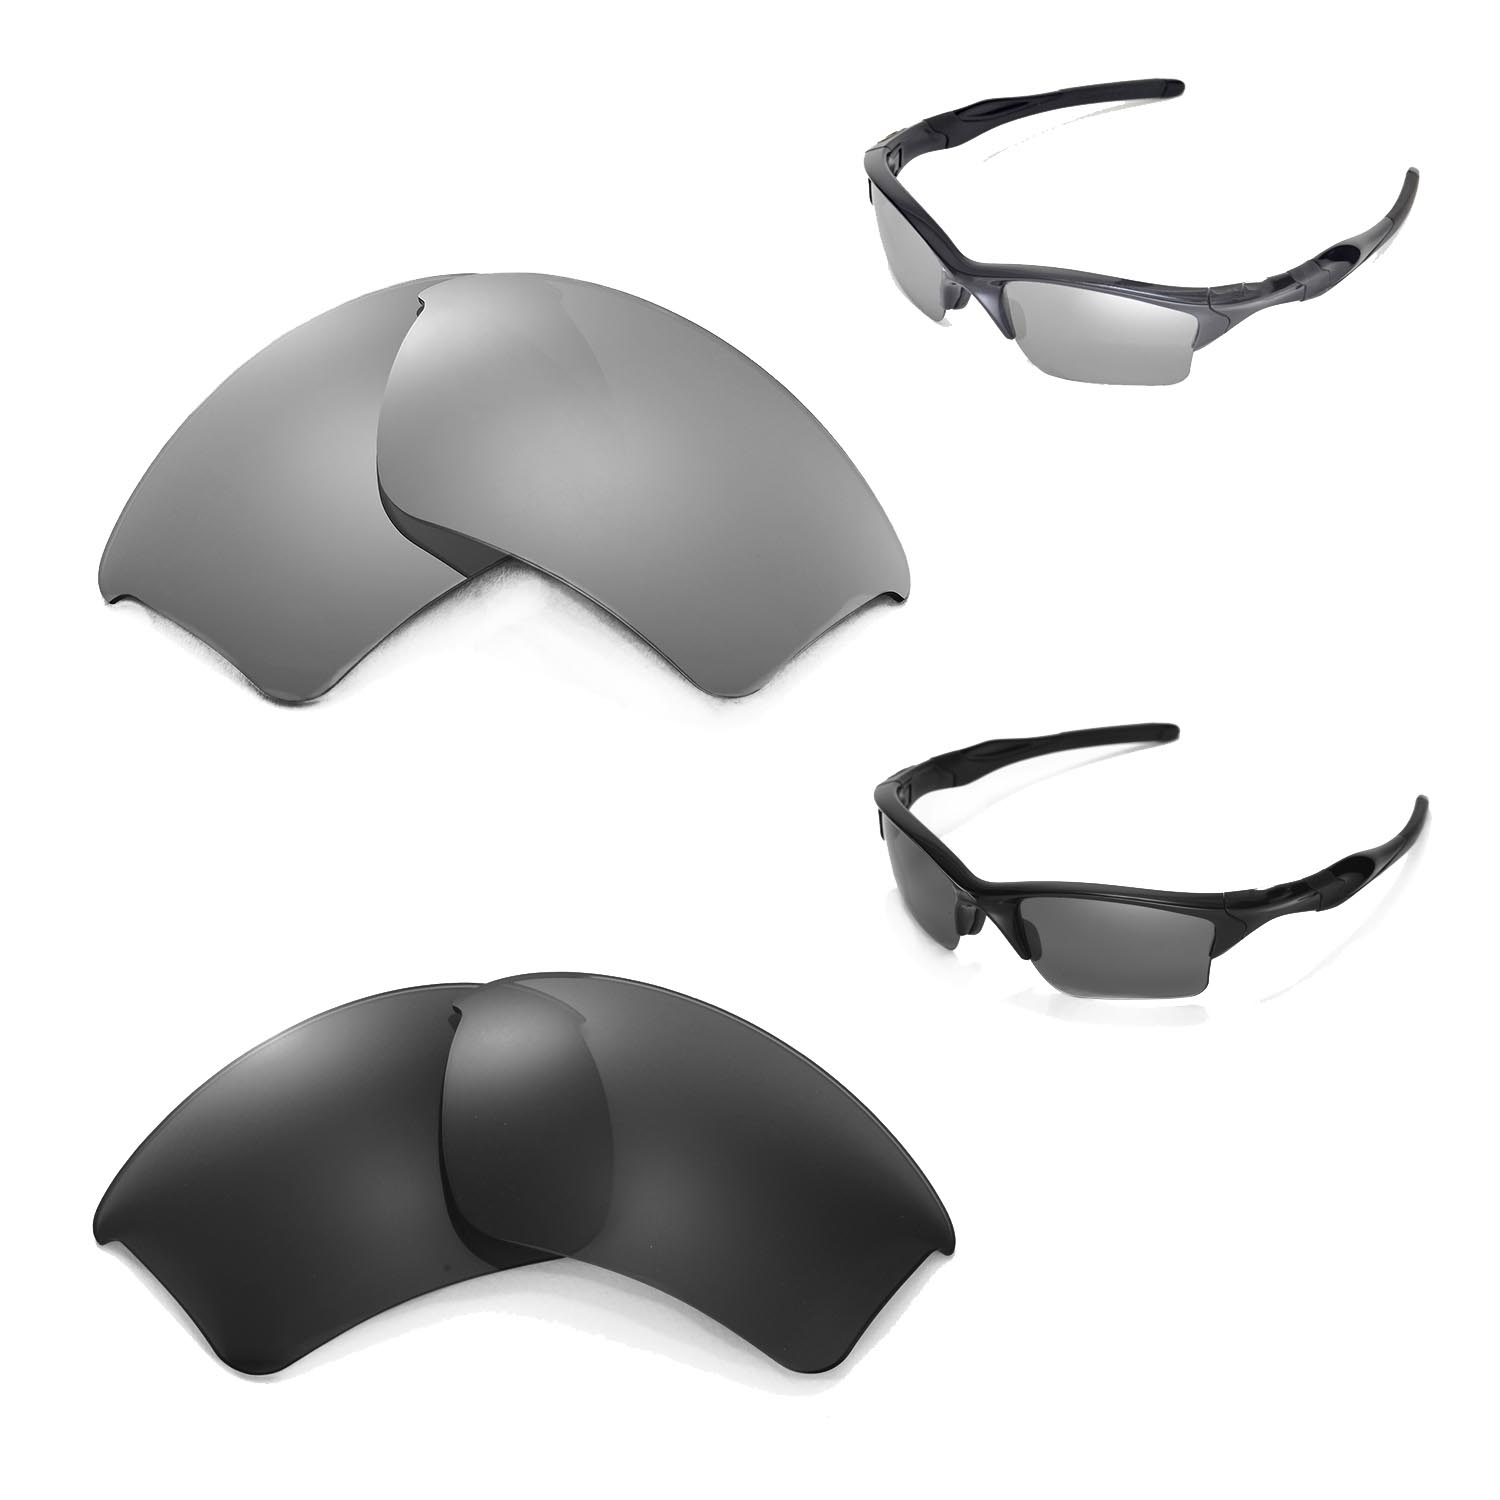 f32c8383c2d80 Details about New Walleva Polarized Black + Titanium Lenses For Oakley Half  Jacket 2.0 XL